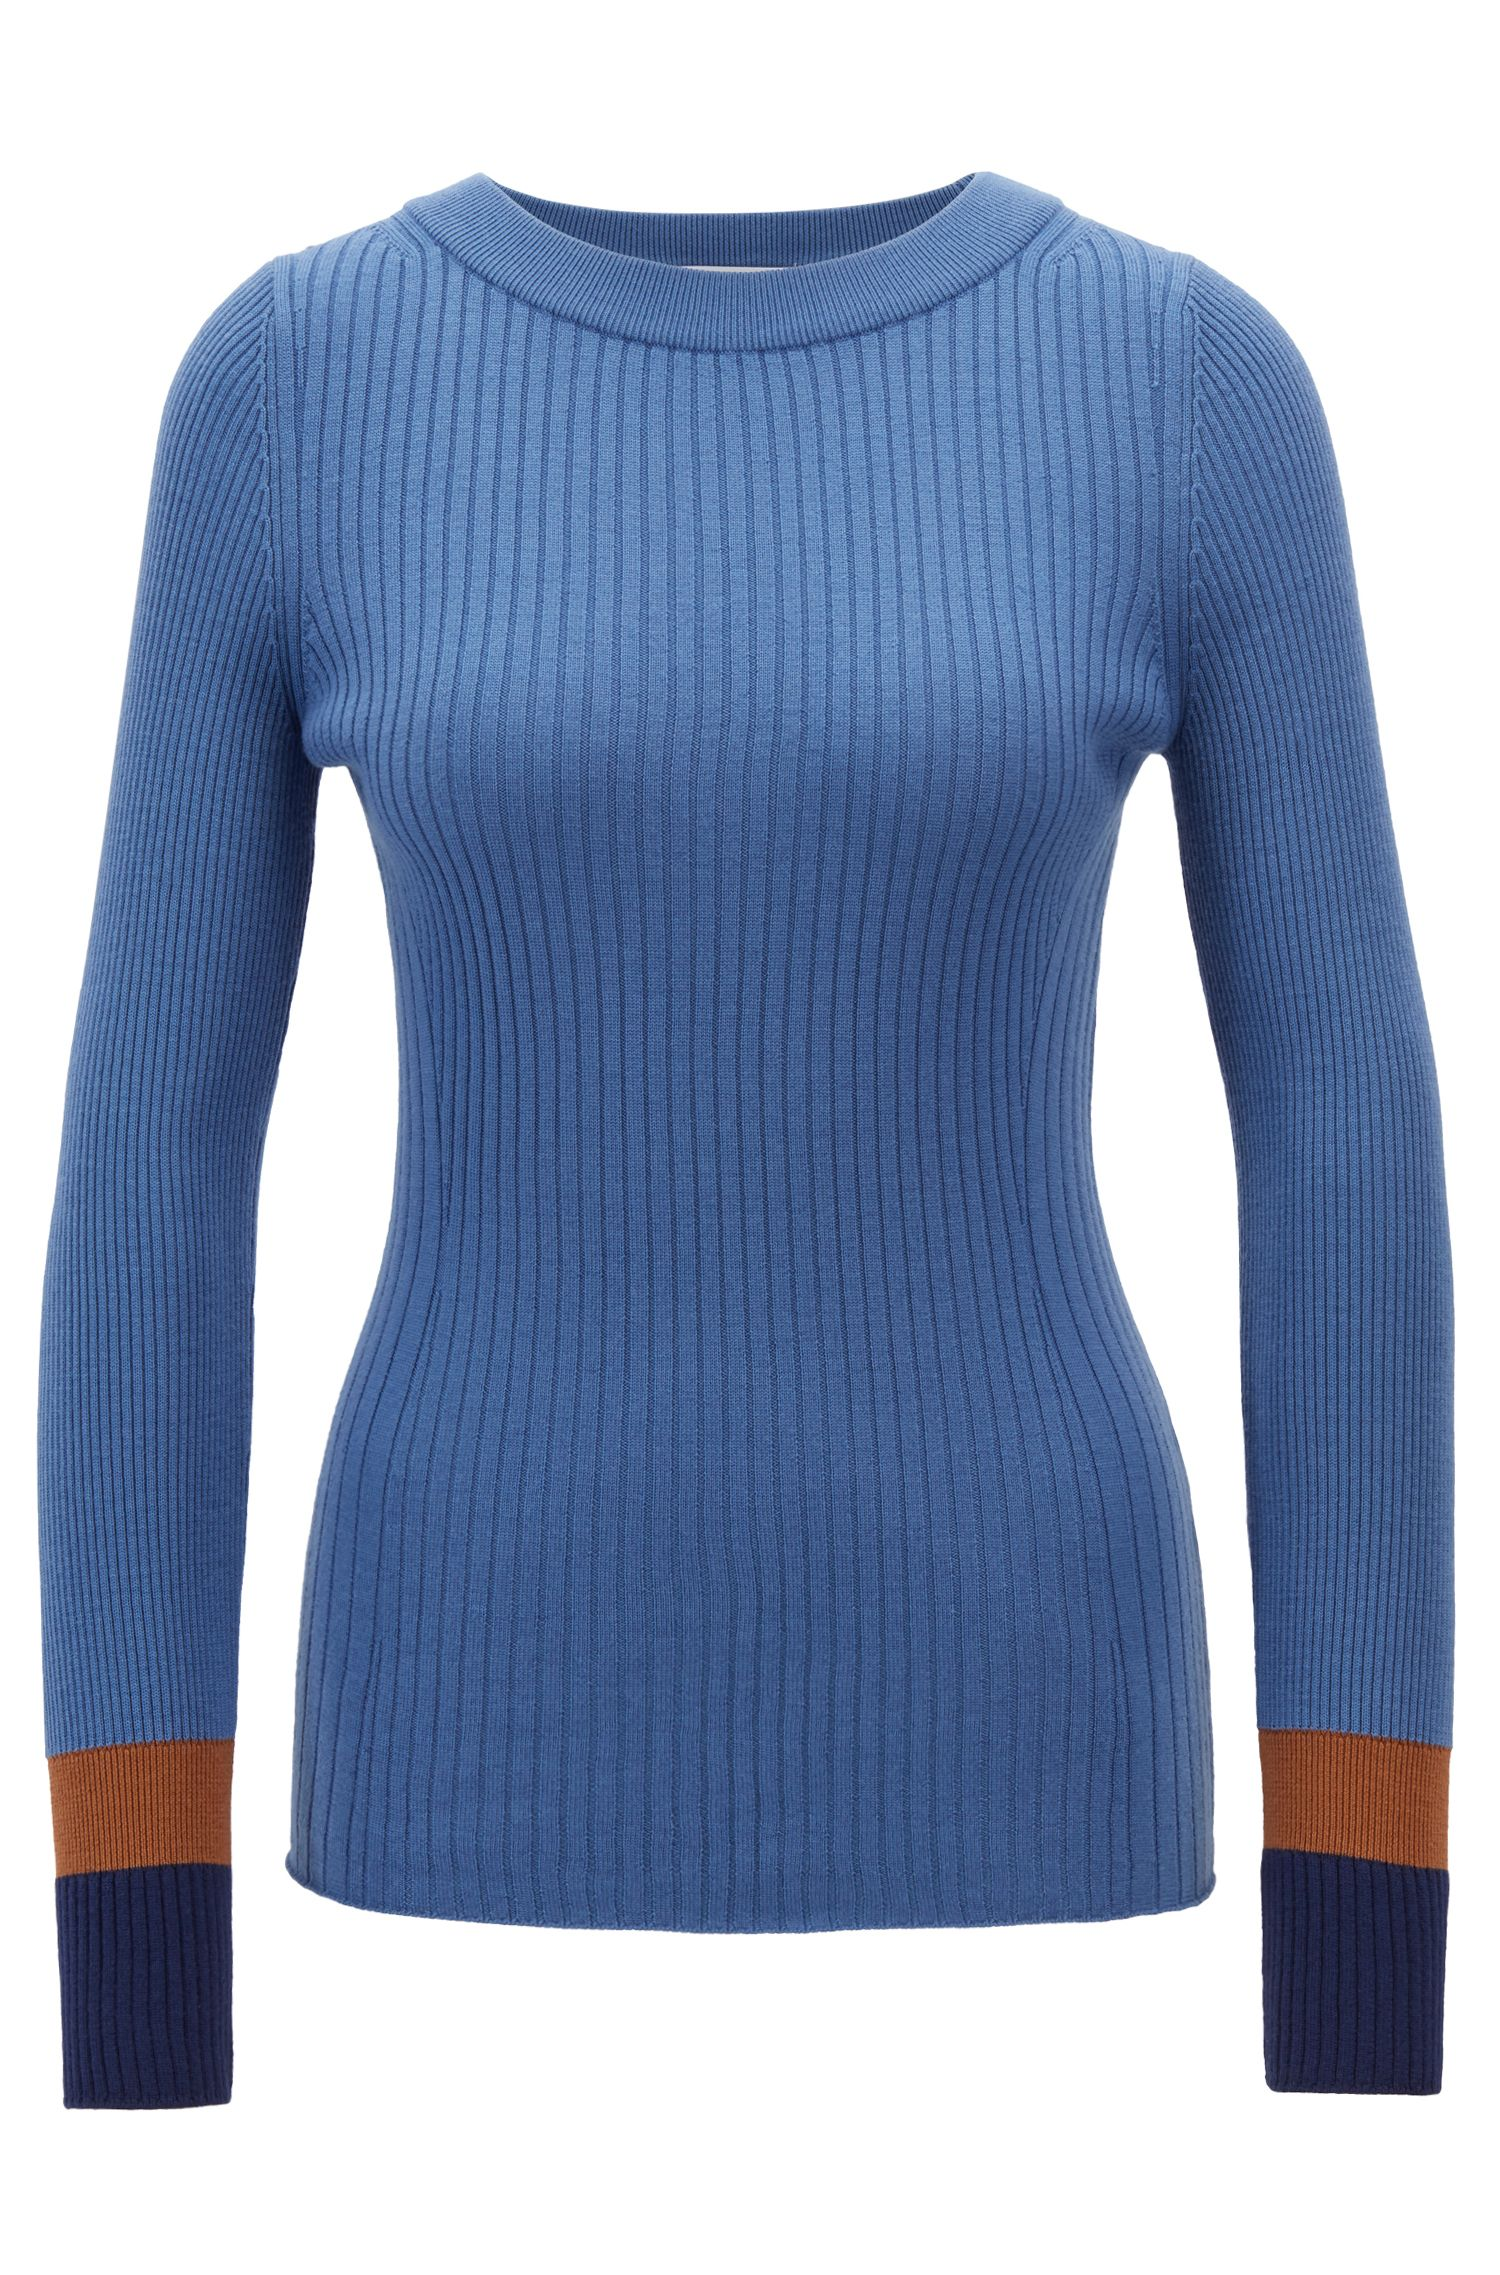 Slim-fit sweater in virgin wool with colorblock cuffs, Patterned